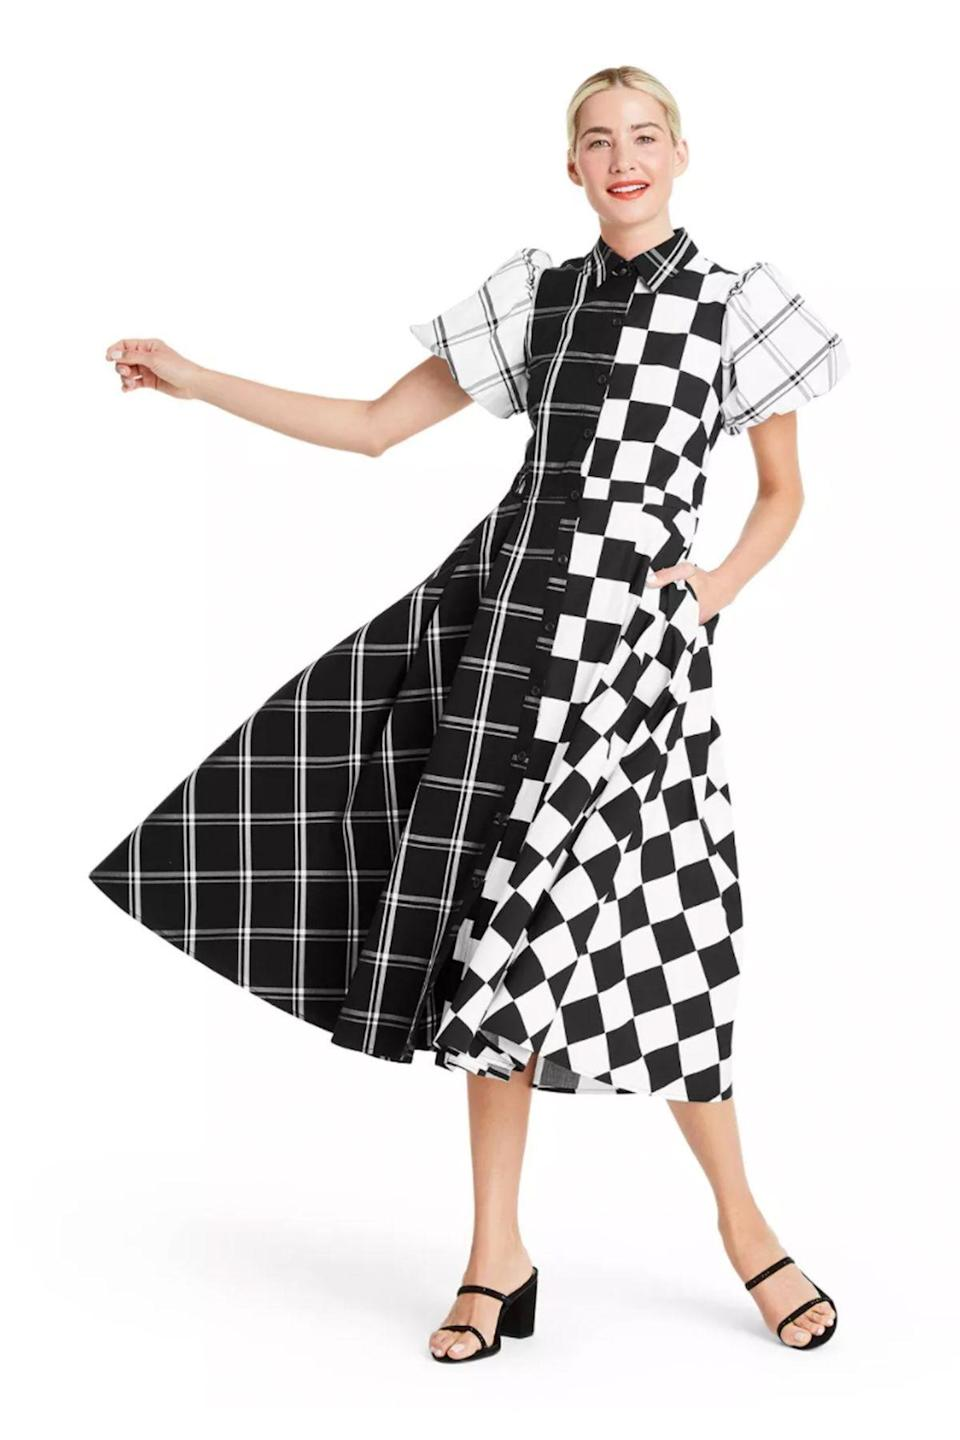 """<p><strong>Christopher John Rogers for Target</strong></p><p>target.com</p><p><strong>$60.00</strong></p><p><a href=""""https://www.target.com/p/mixed-checkerboard-puff-sleeve-shirtdress-christopher-john-rogers-for-target-black-white/-/A-82020276"""" rel=""""nofollow noopener"""" target=""""_blank"""" data-ylk=""""slk:Shop Now"""" class=""""link rapid-noclick-resp"""">Shop Now</a></p>"""